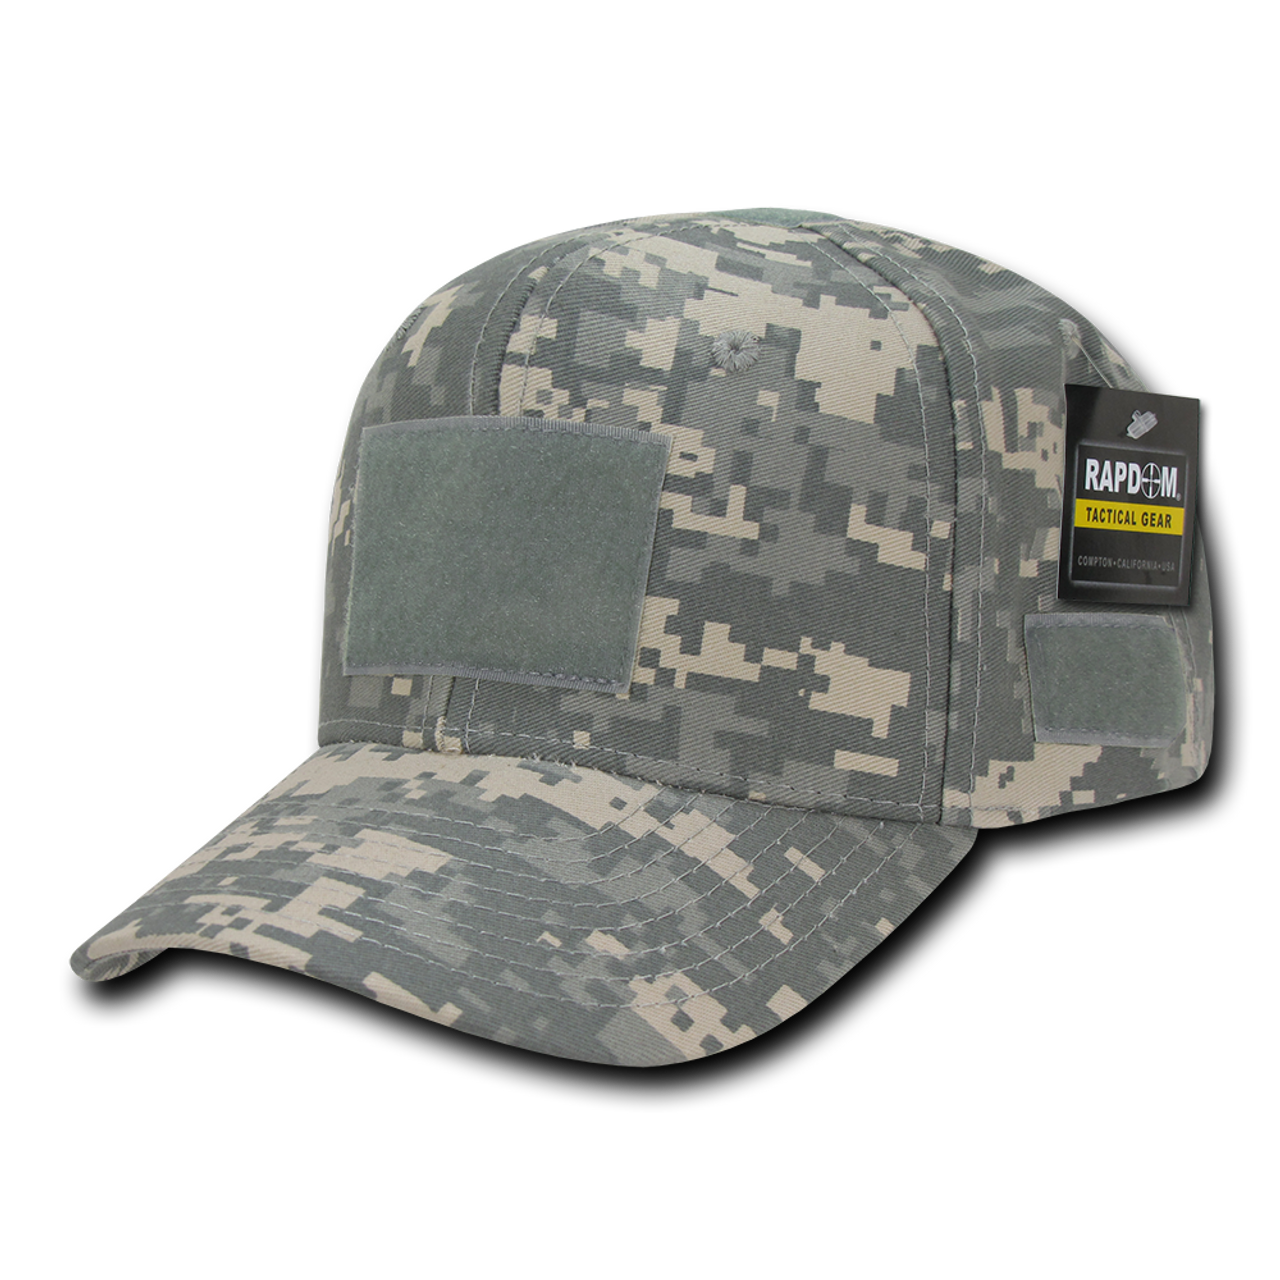 Tactical Cap ACU Digital Camouflage - US Military Hats 96b4d4950b7a